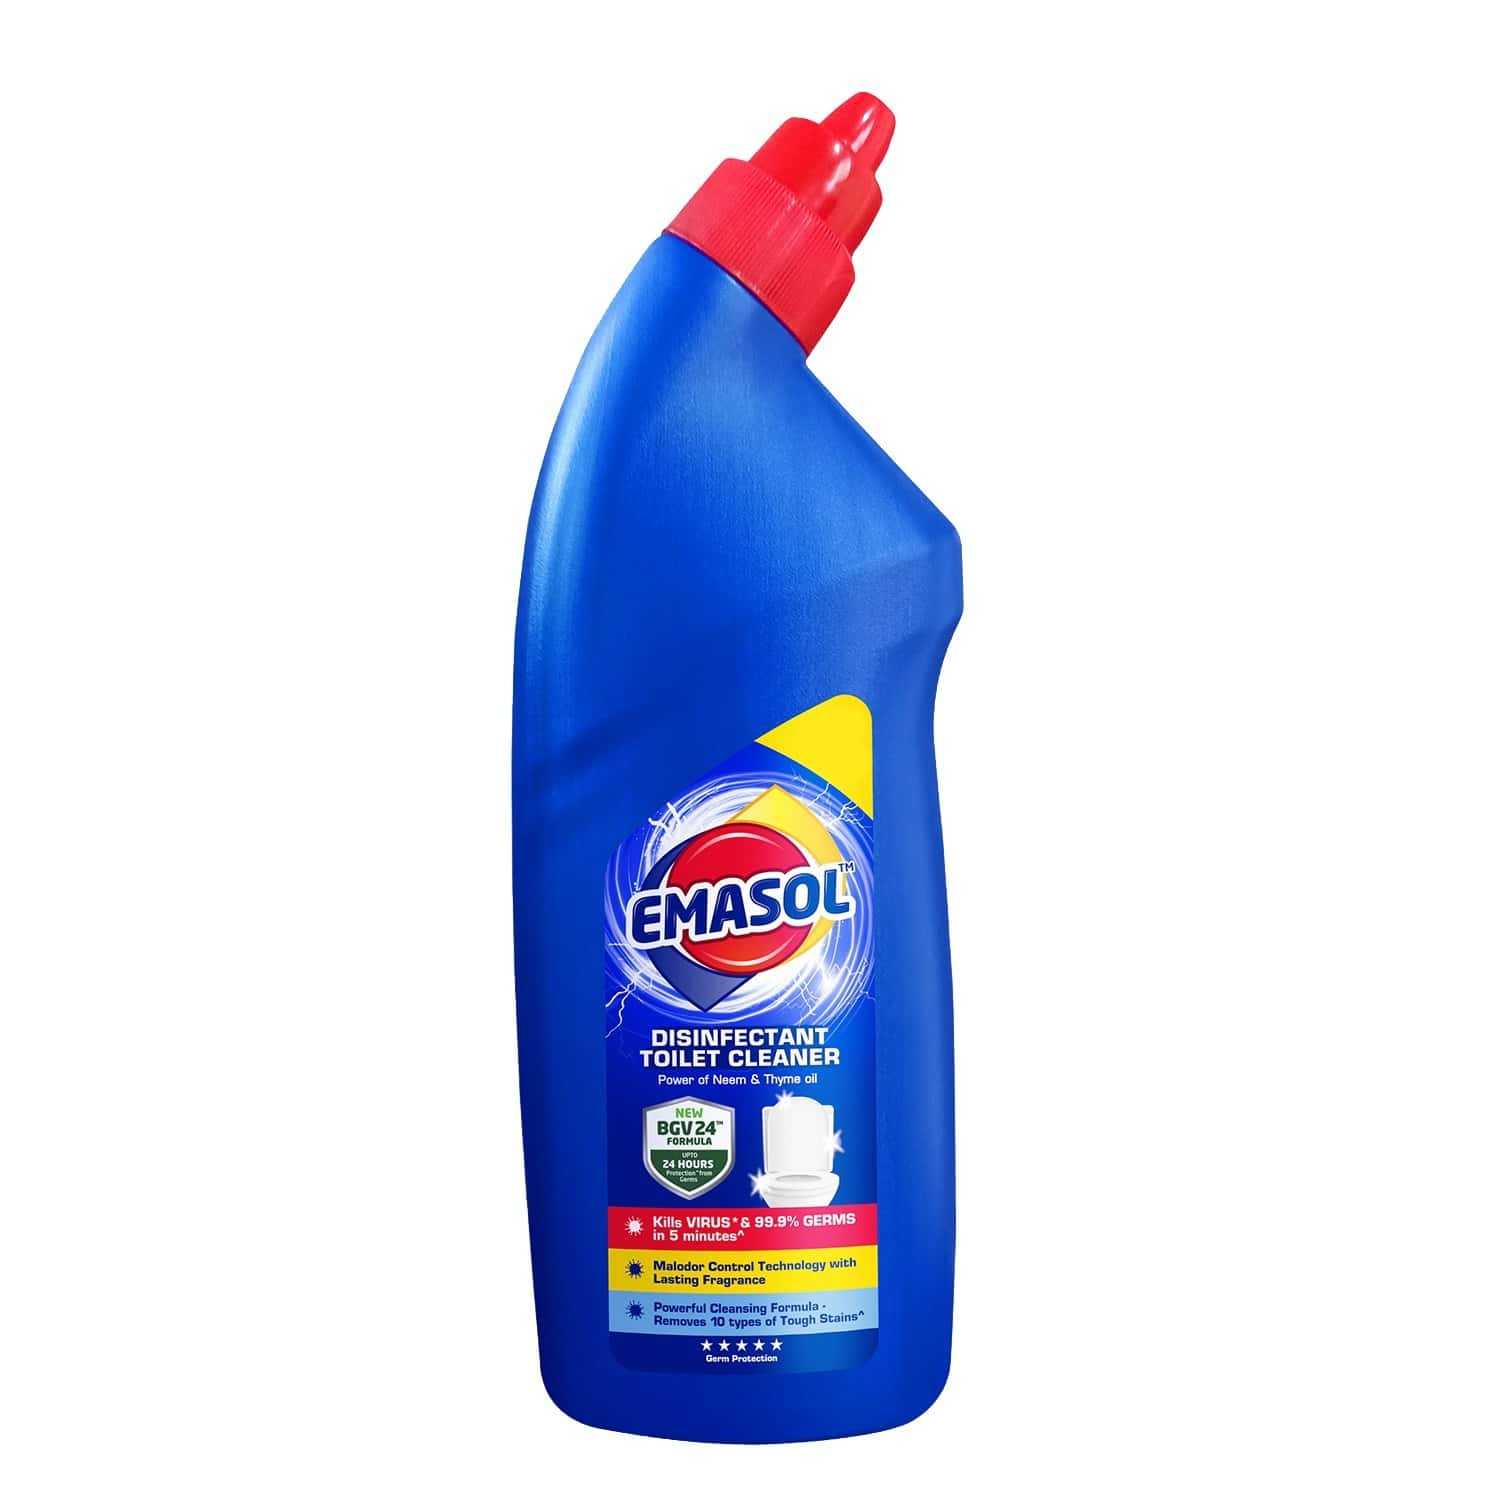 Emami Emasol Disinfectant Toilet Cleaner - 500ml